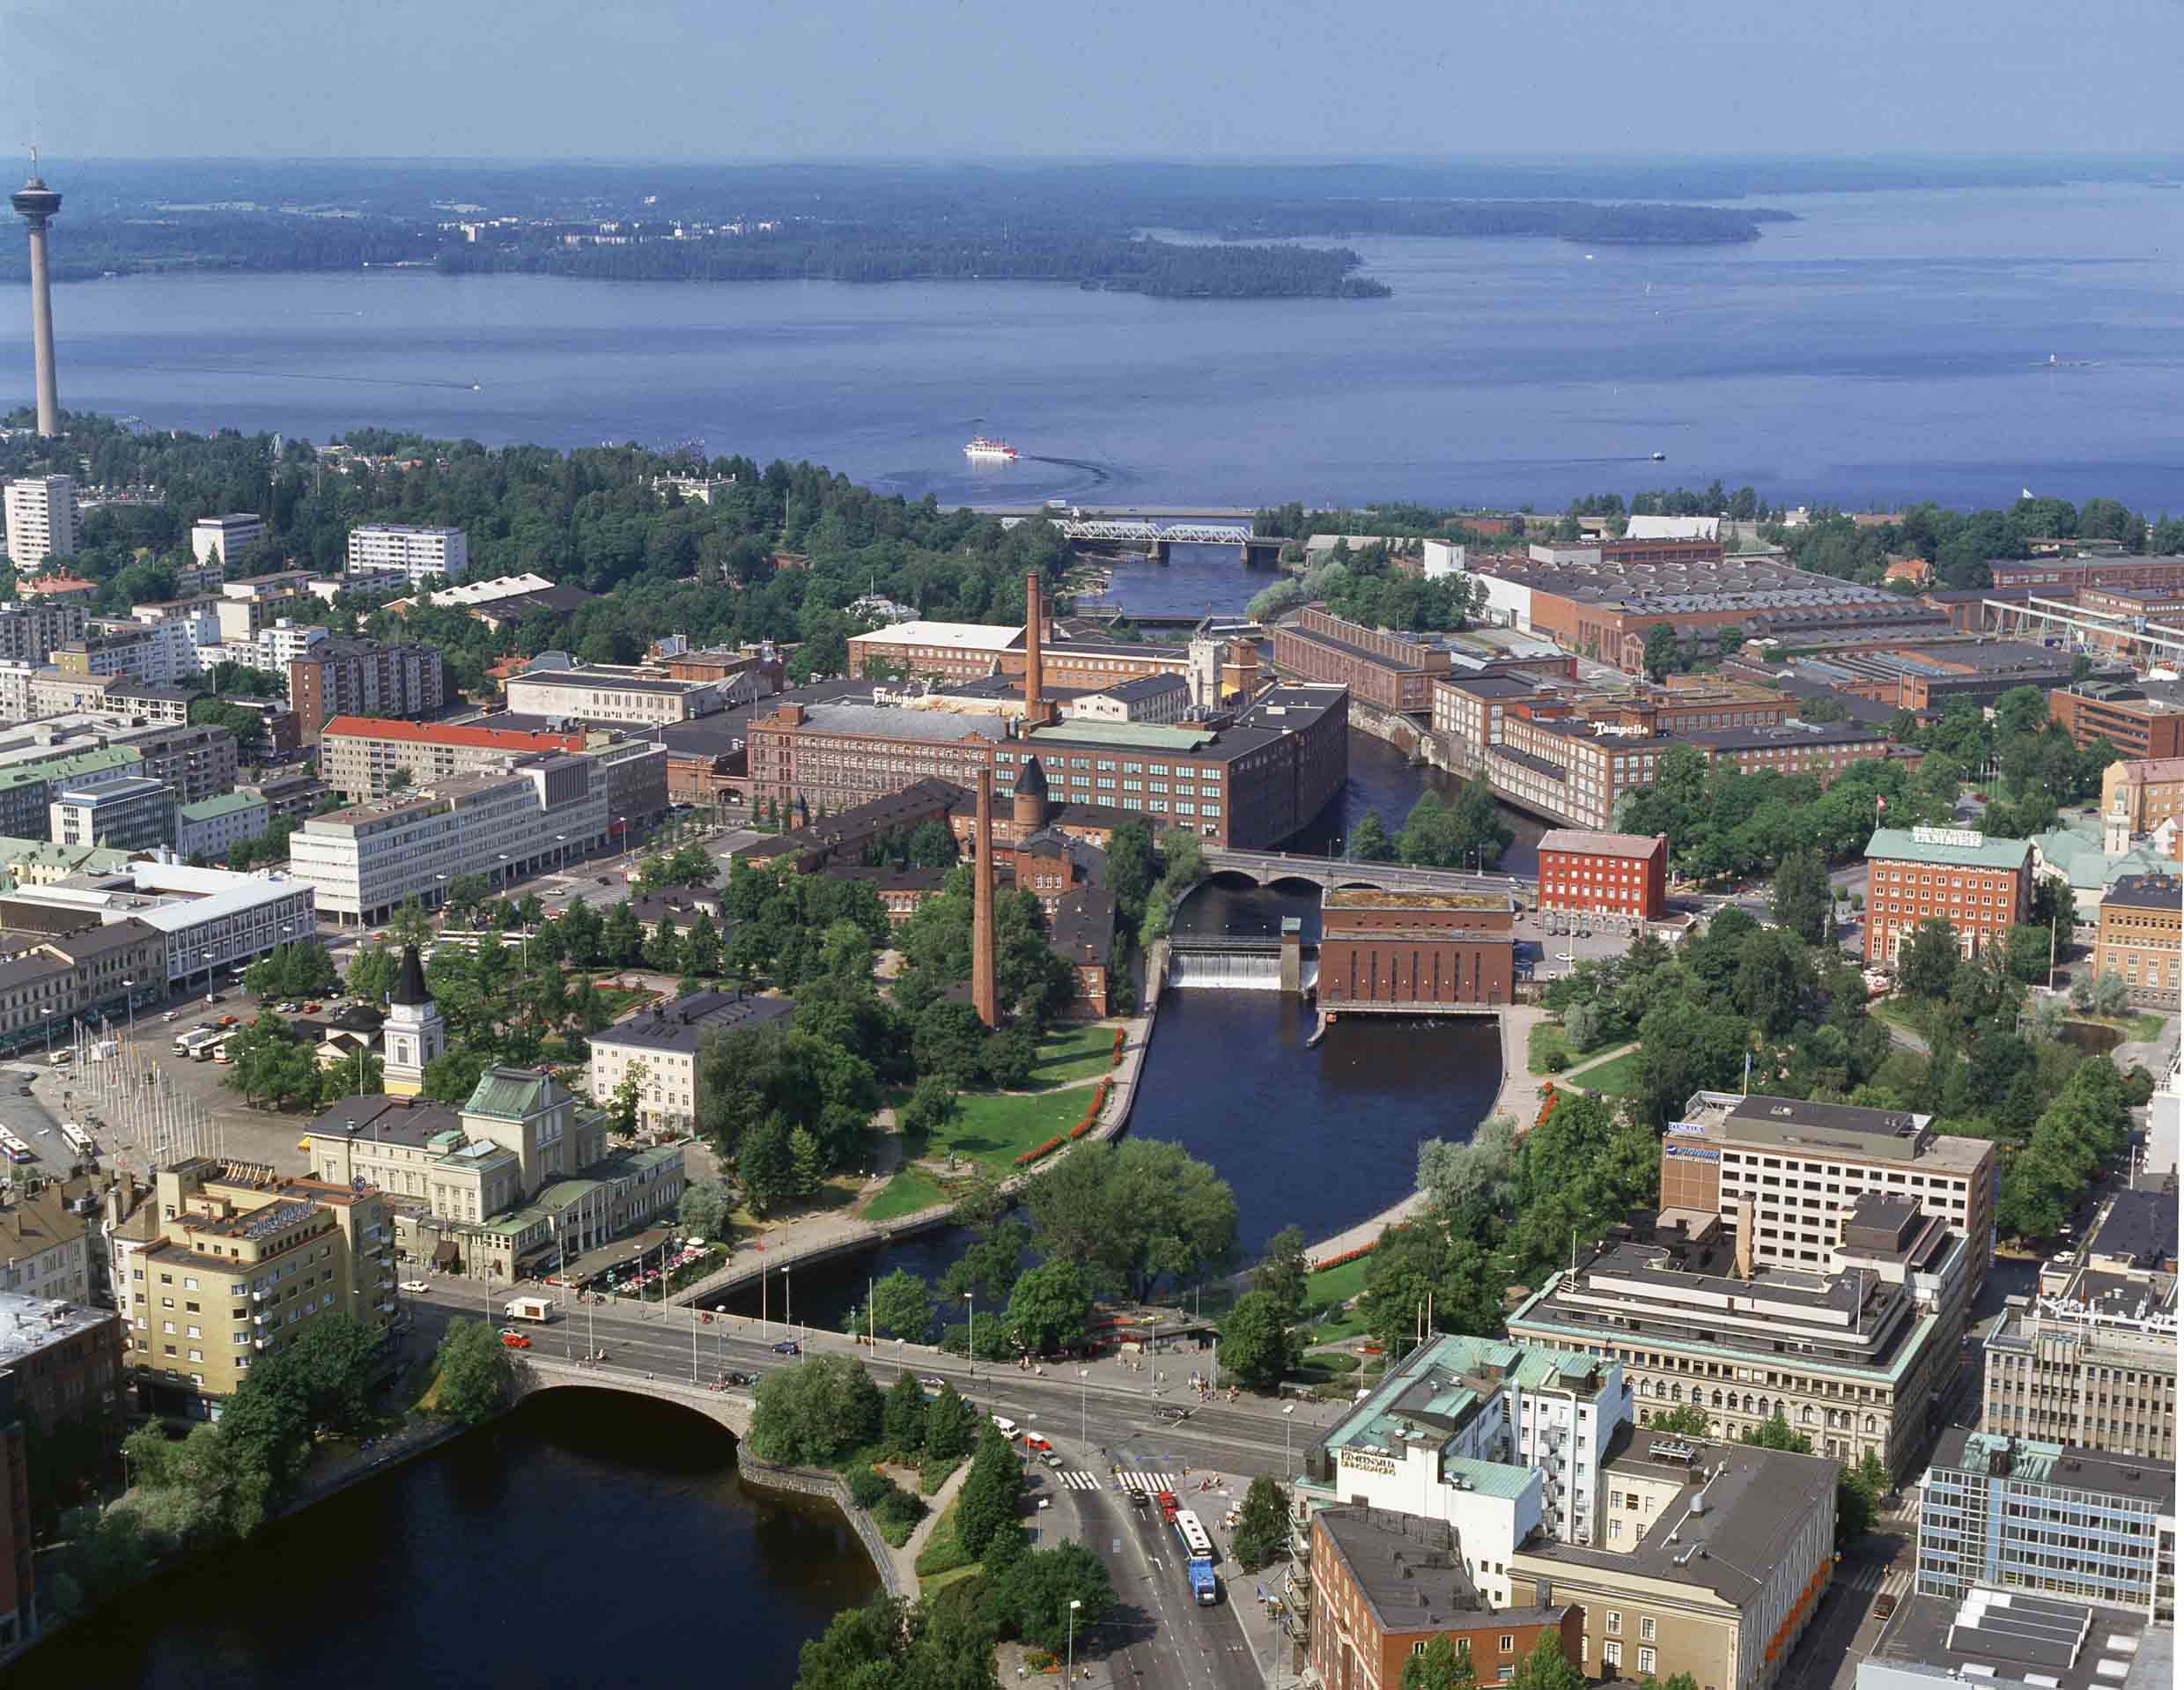 Mll Tampere